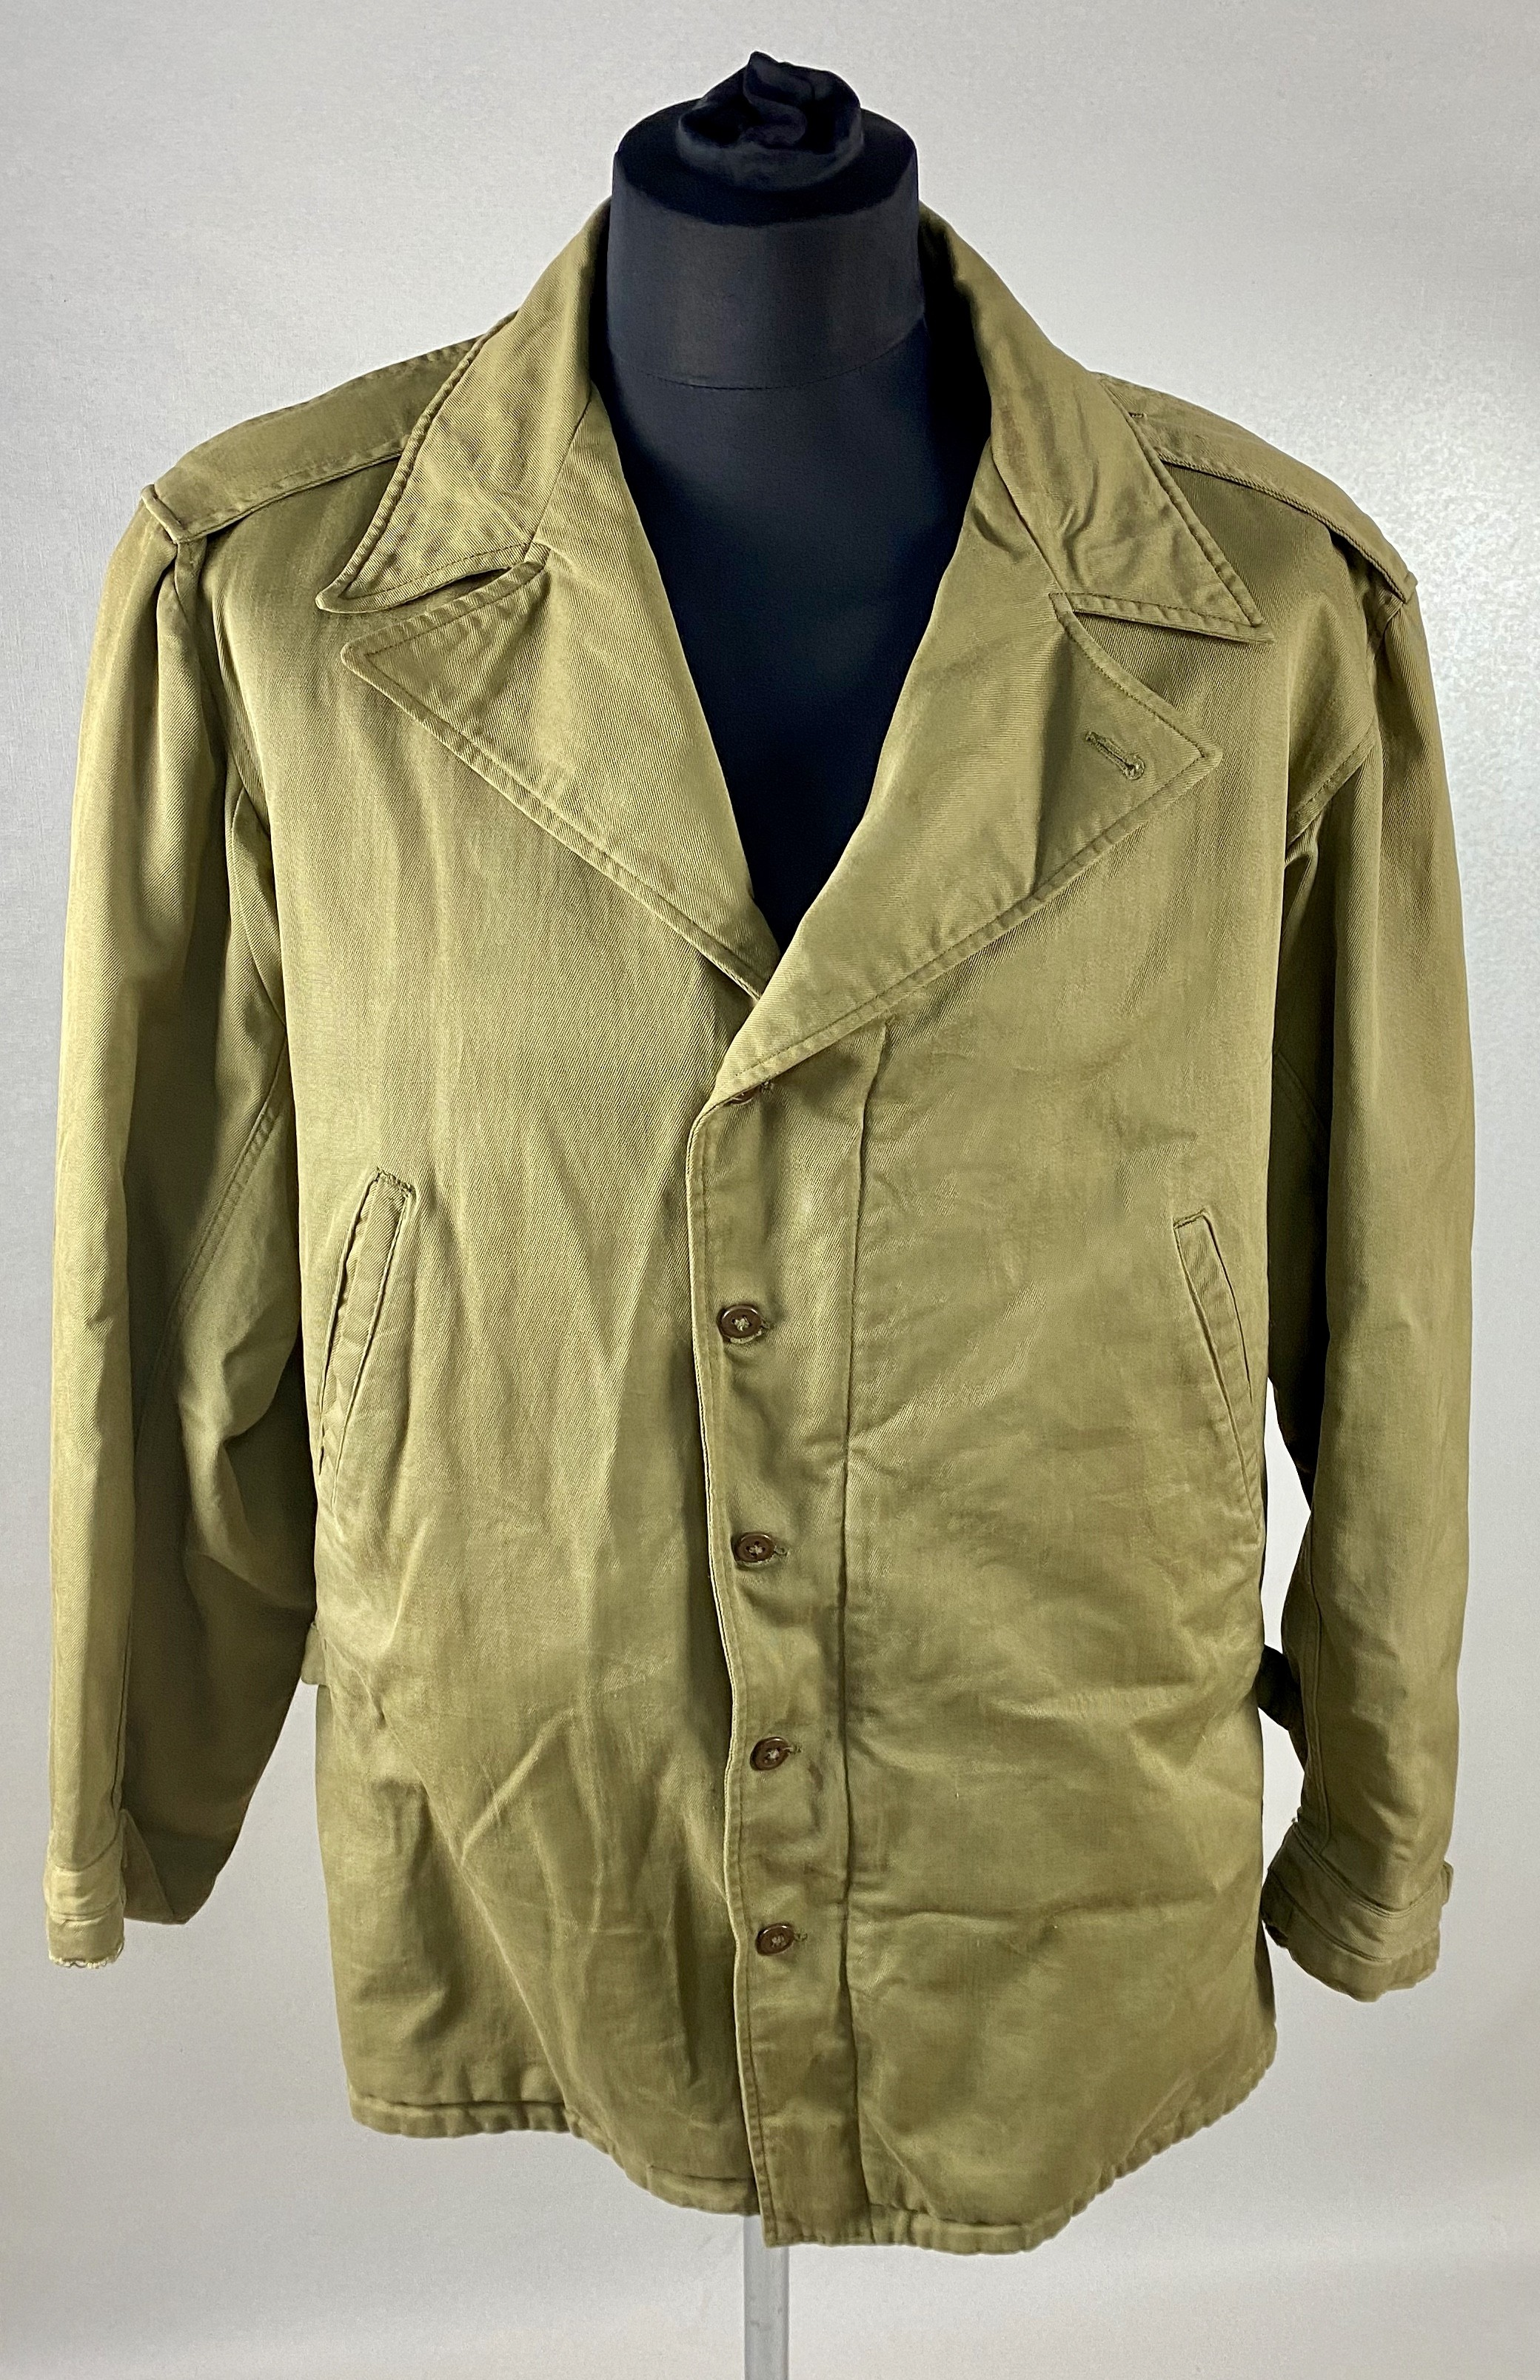 UN-FIELD JACKET U.S. ARTIC OD M-1943 WWII